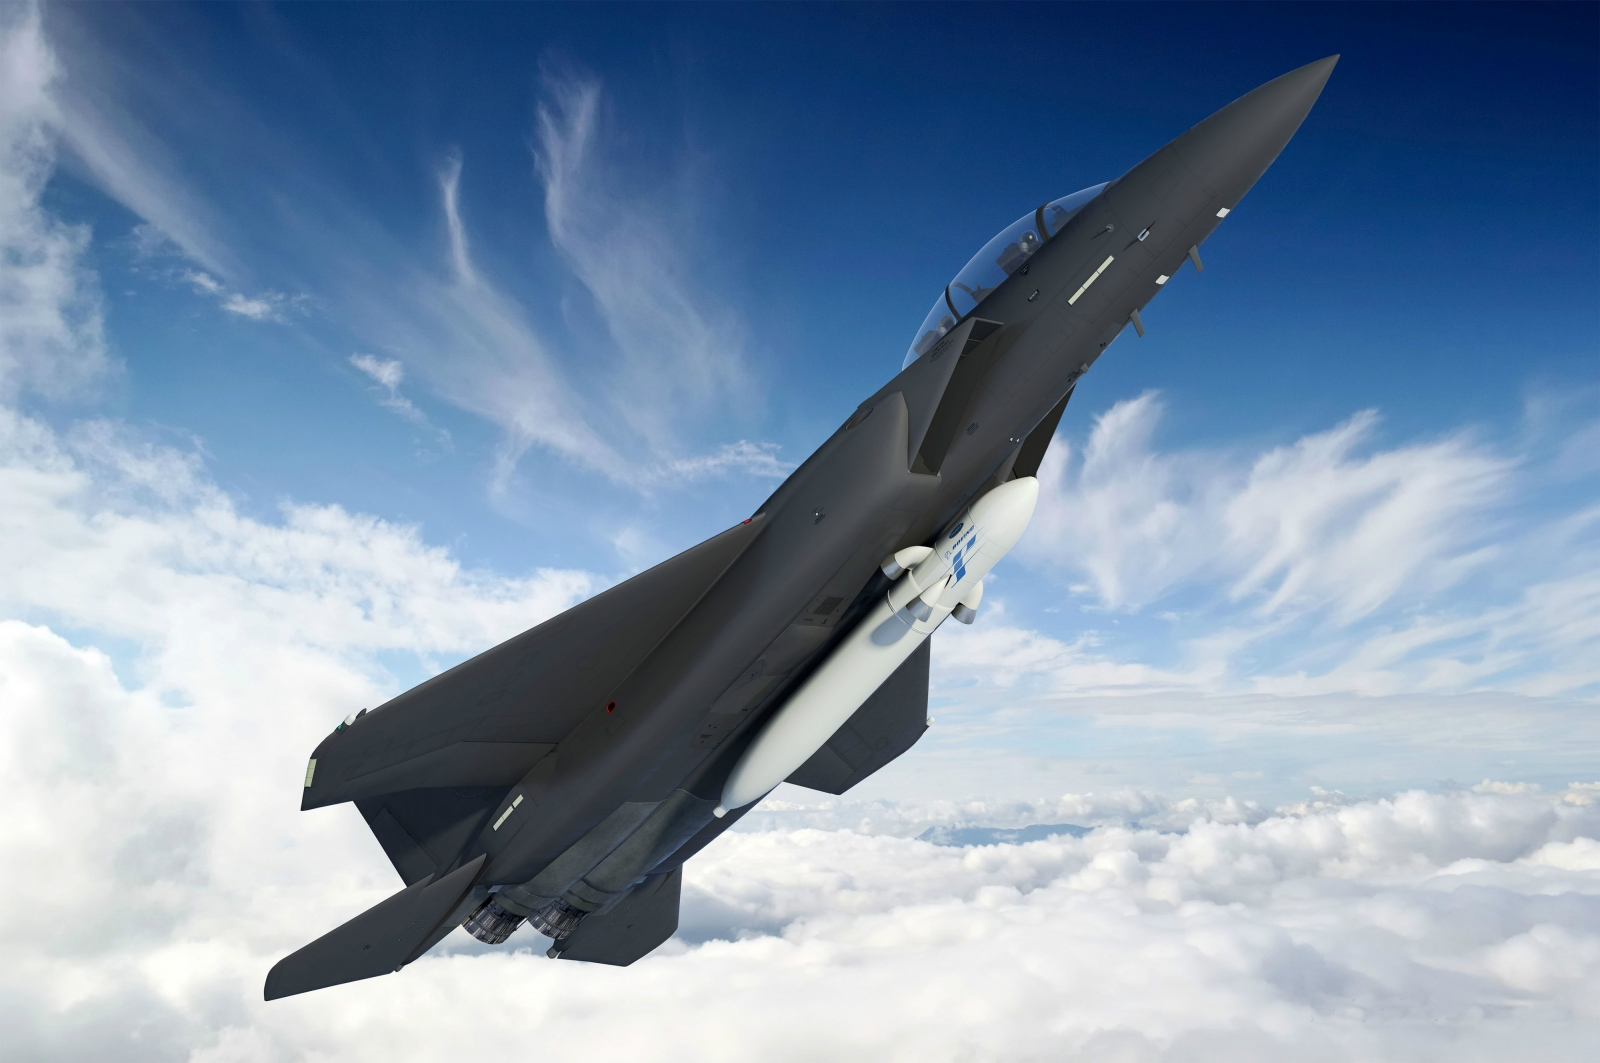 DARPA satellite fighter jet